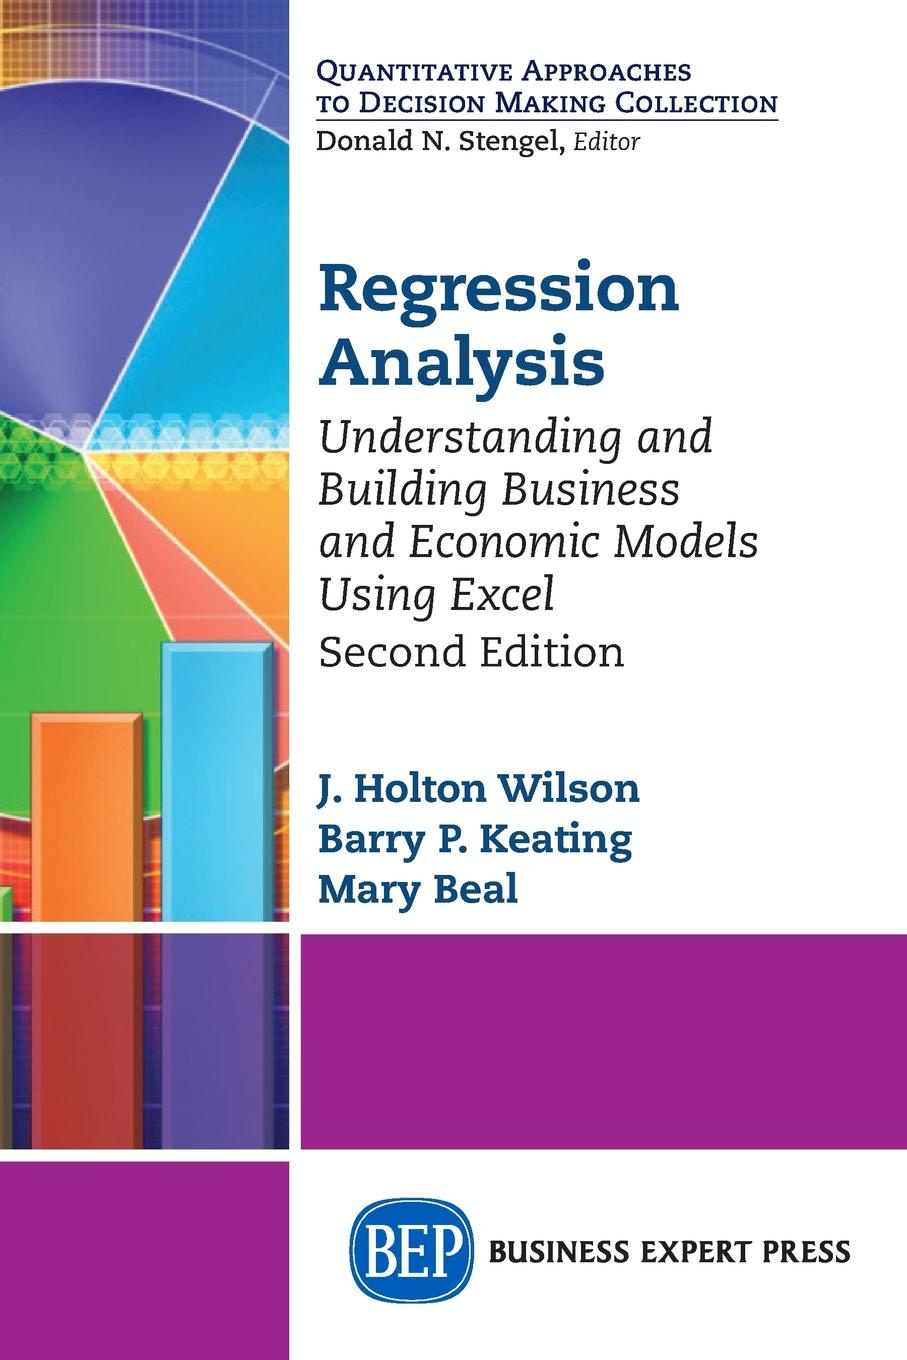 J. Holton Wilson, Barry P. Keating, Mary Beal Regression Analysis. Understanding and Building Business and Economic Models Using Excel, Second Edition k proctor scott building financial models with microsoft excel a guide for business professionals